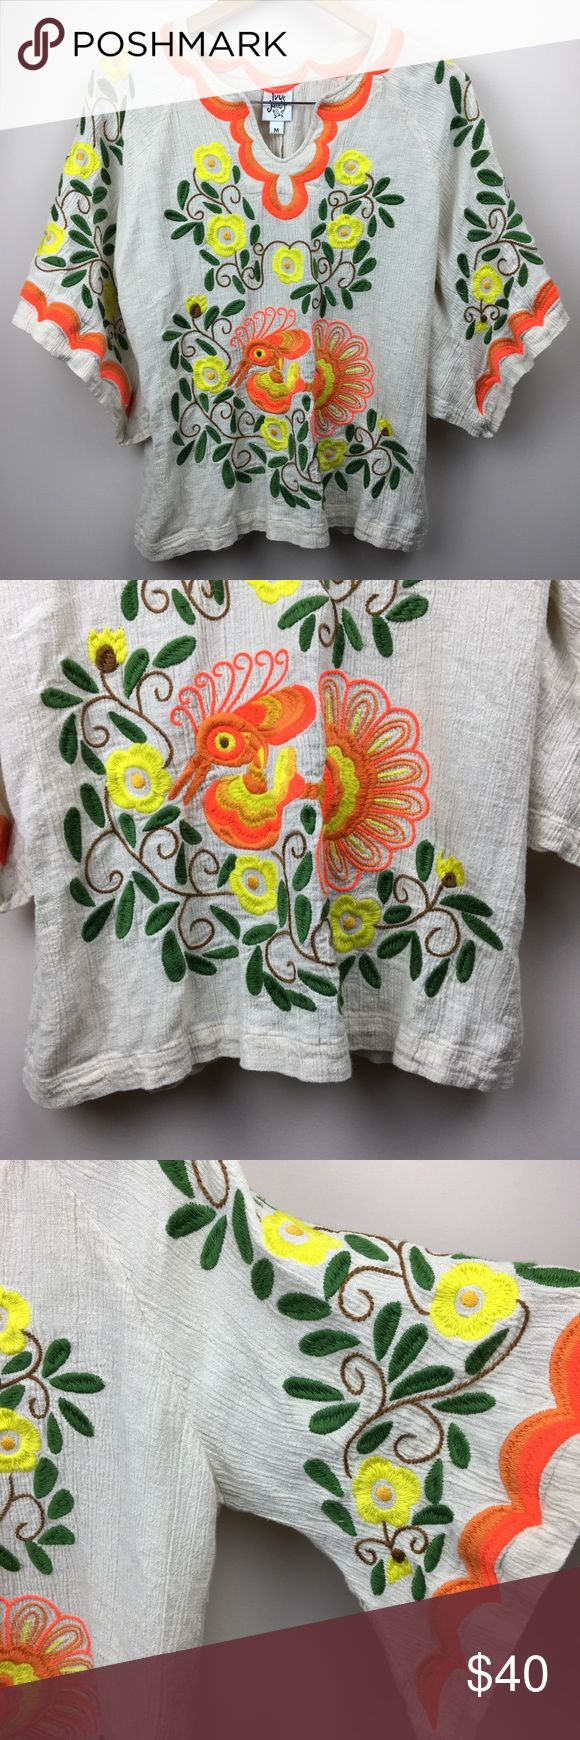 """Ivy Jane Bohemian Gypsy Floral Embroidered Blouse Ivy Jane Bohemian Gypsy Floral Embroidered Blouse. Batwing sleeves. Ivory colored with orange, green, yellow, and brown embroidery. Linen blend. Excellent like new condition. Perfect for upcoming festivals!   Approximate measurements laying flat: -bust 20"""" across  -length from shoulder seam 25"""" -sleeve length to longest tip 20 """" Ivy Jane Tops Blouses"""